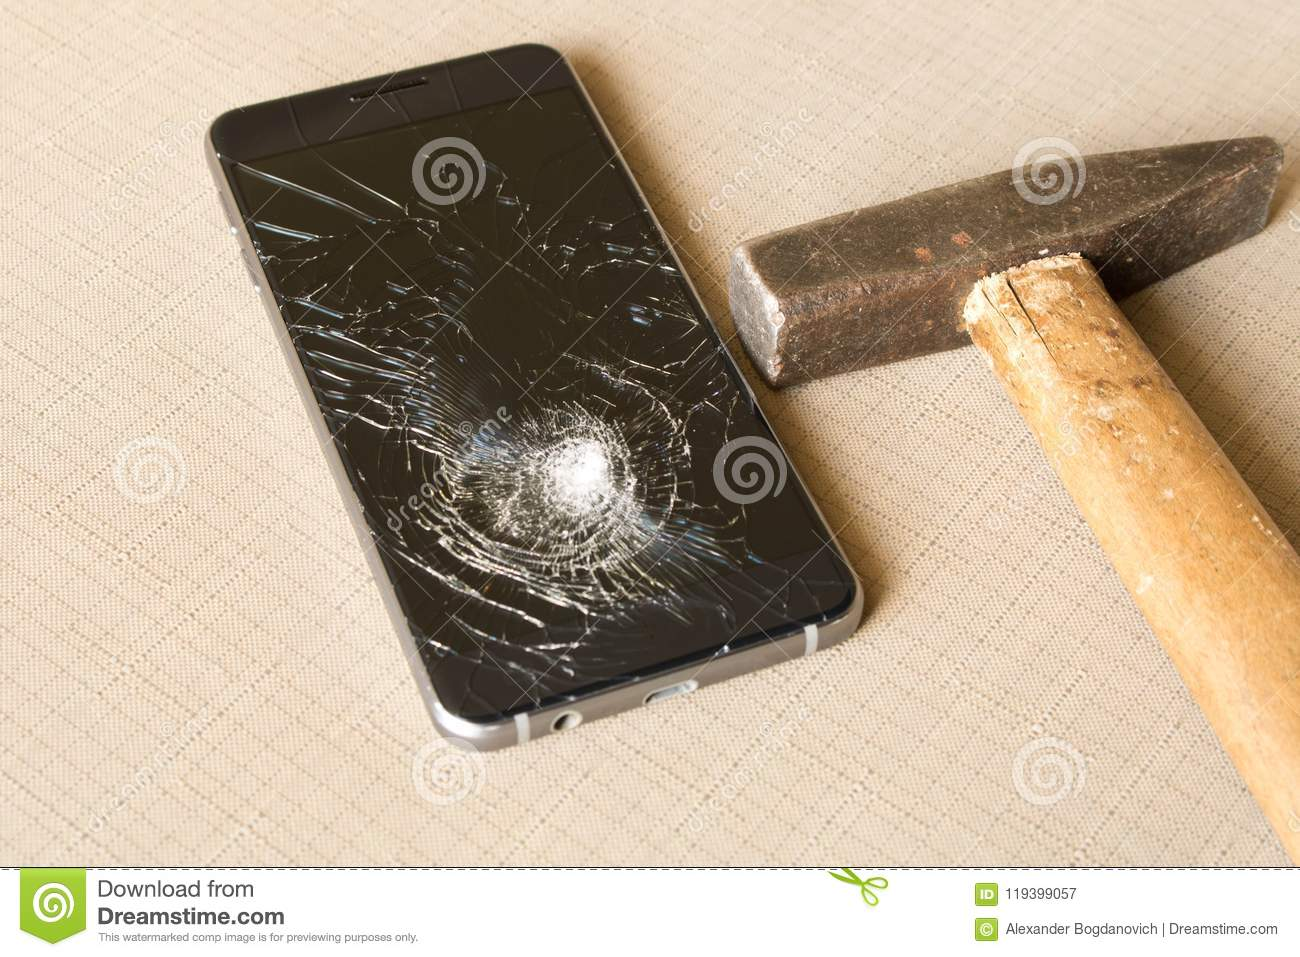 A broken cell phone and hammer on grey background